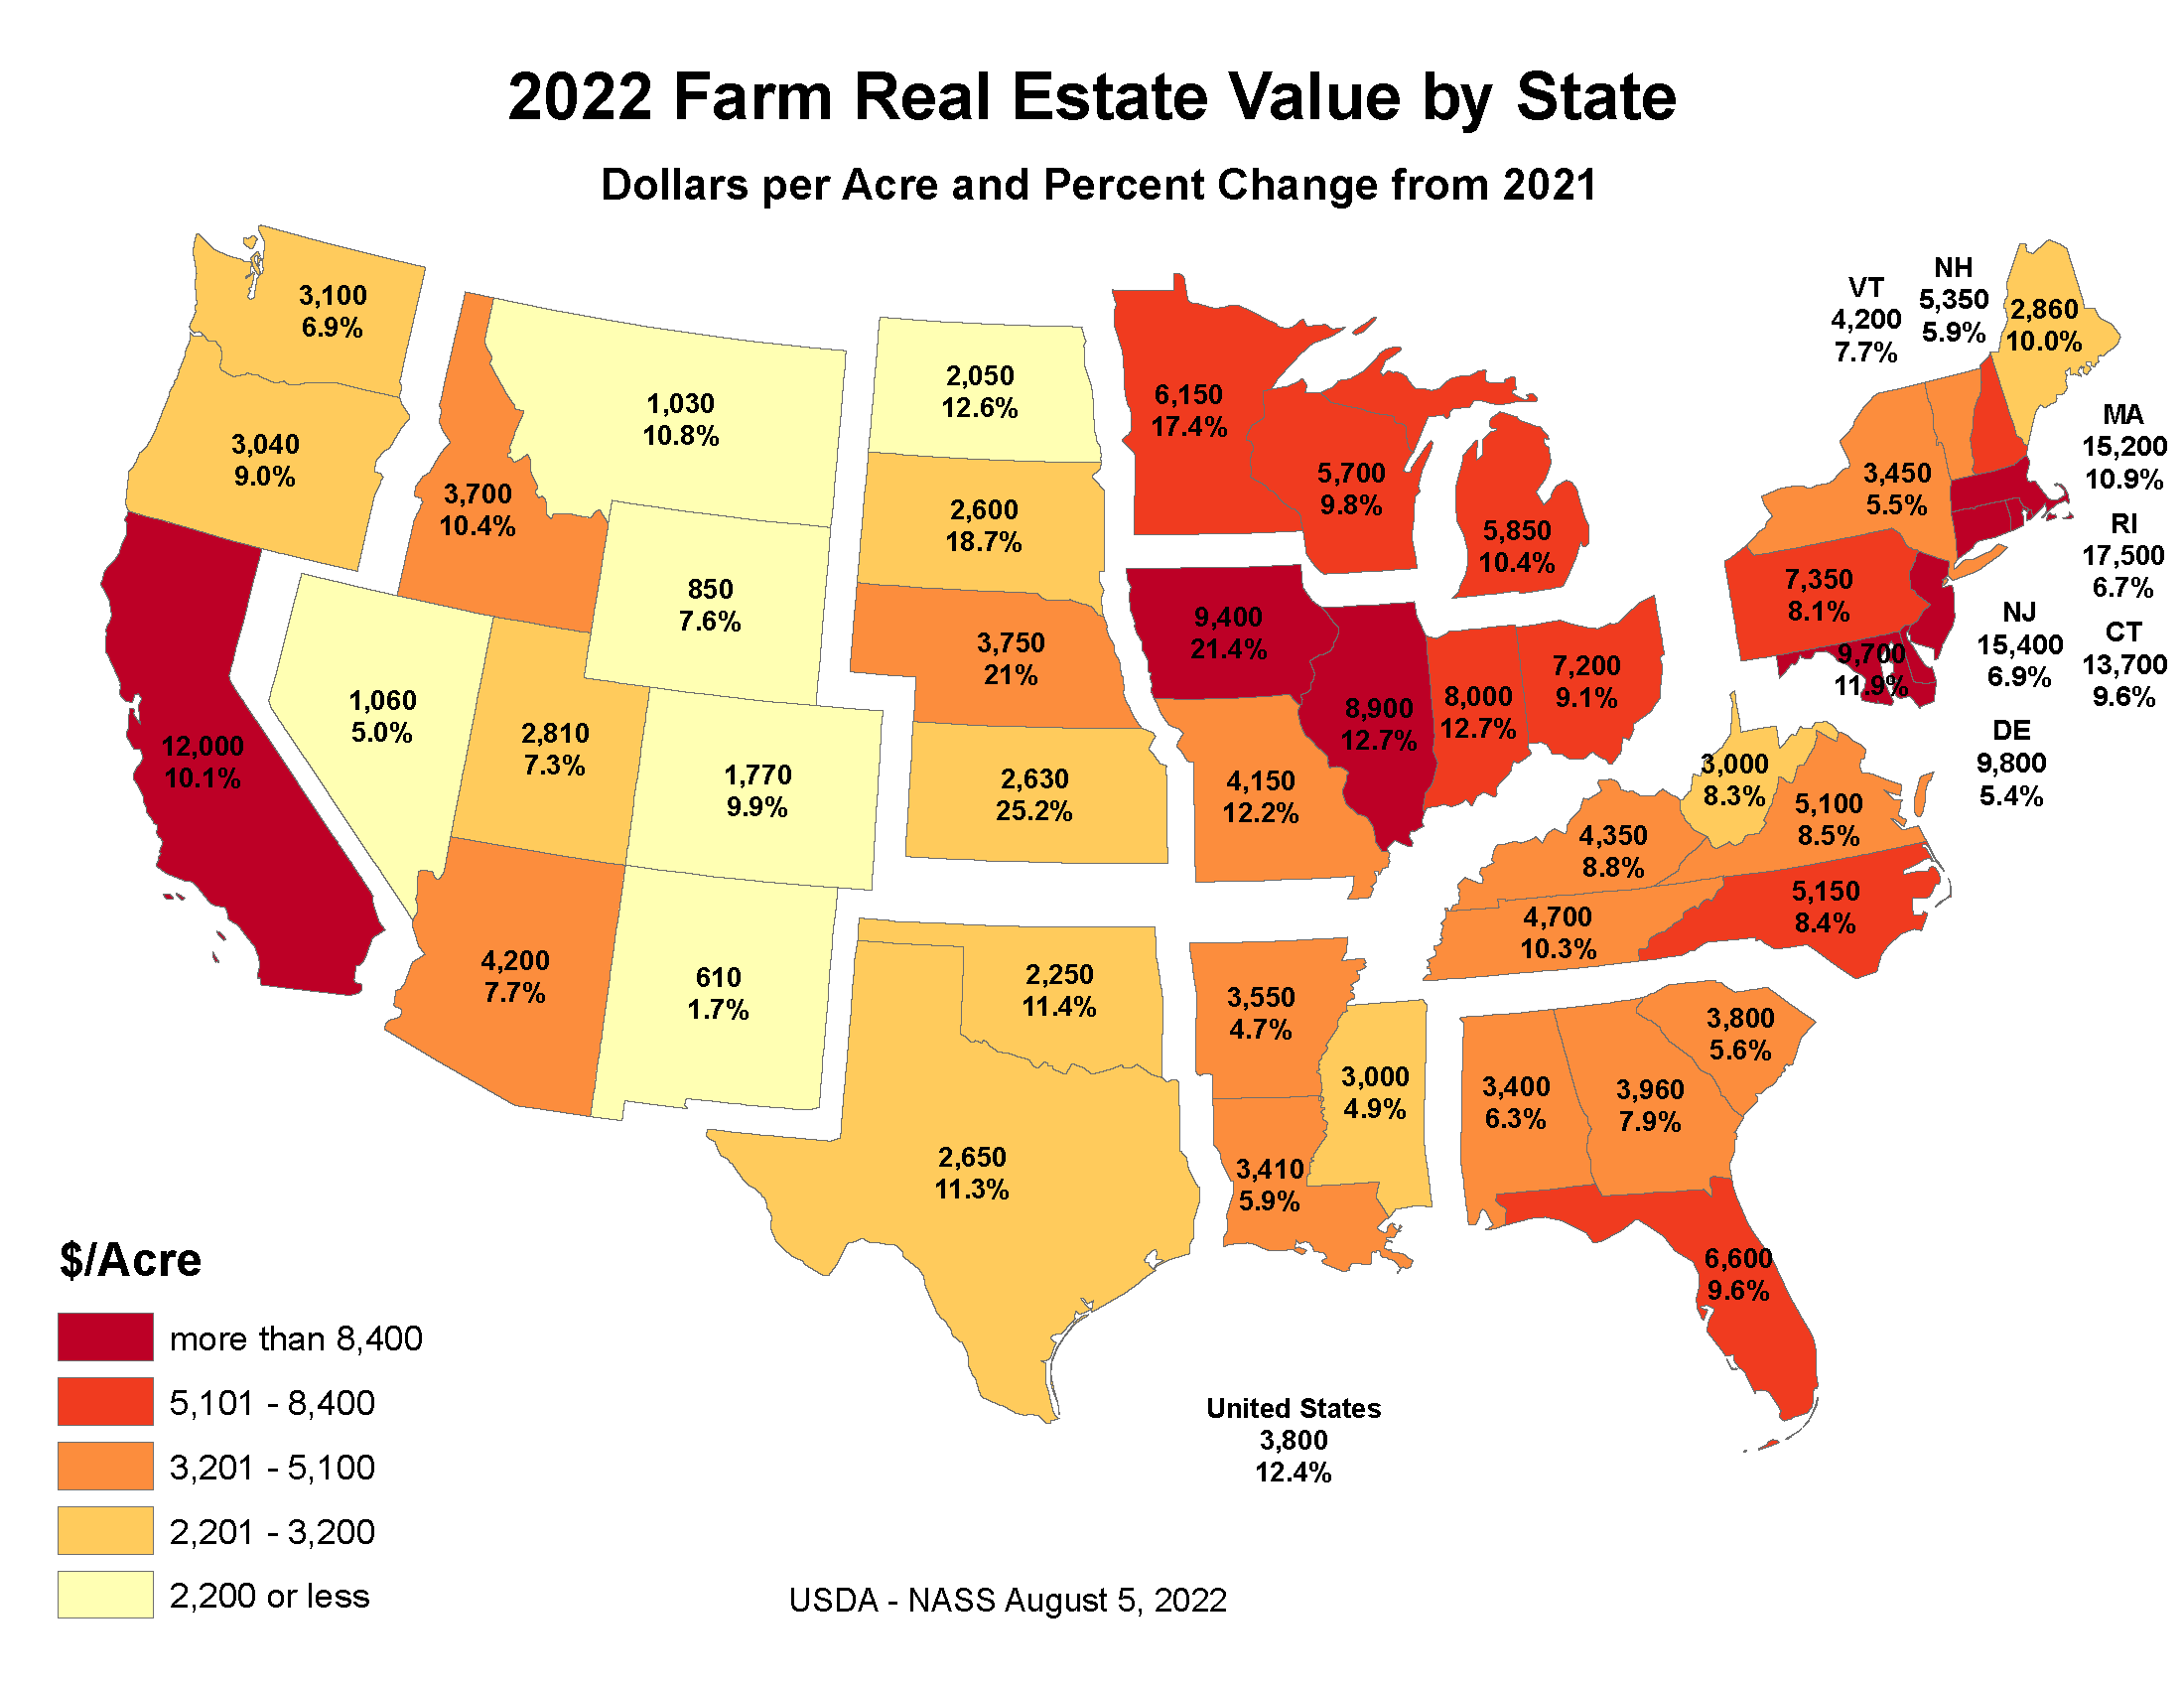 Land Values: Farm Real Estate Value by State, US